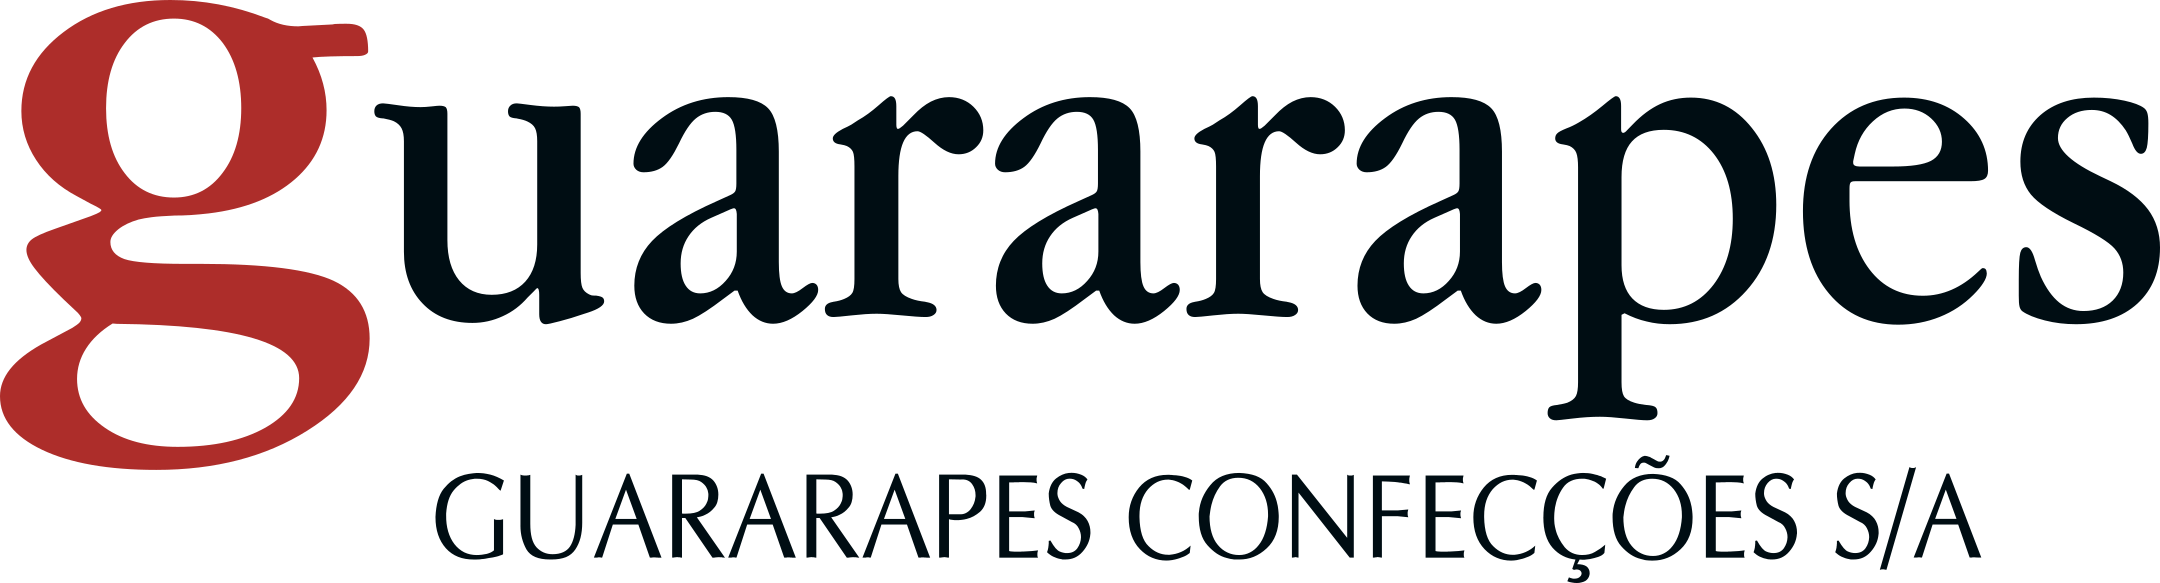 grupo guararapes logo 1 - Grupo Guararapes Confecções Logo